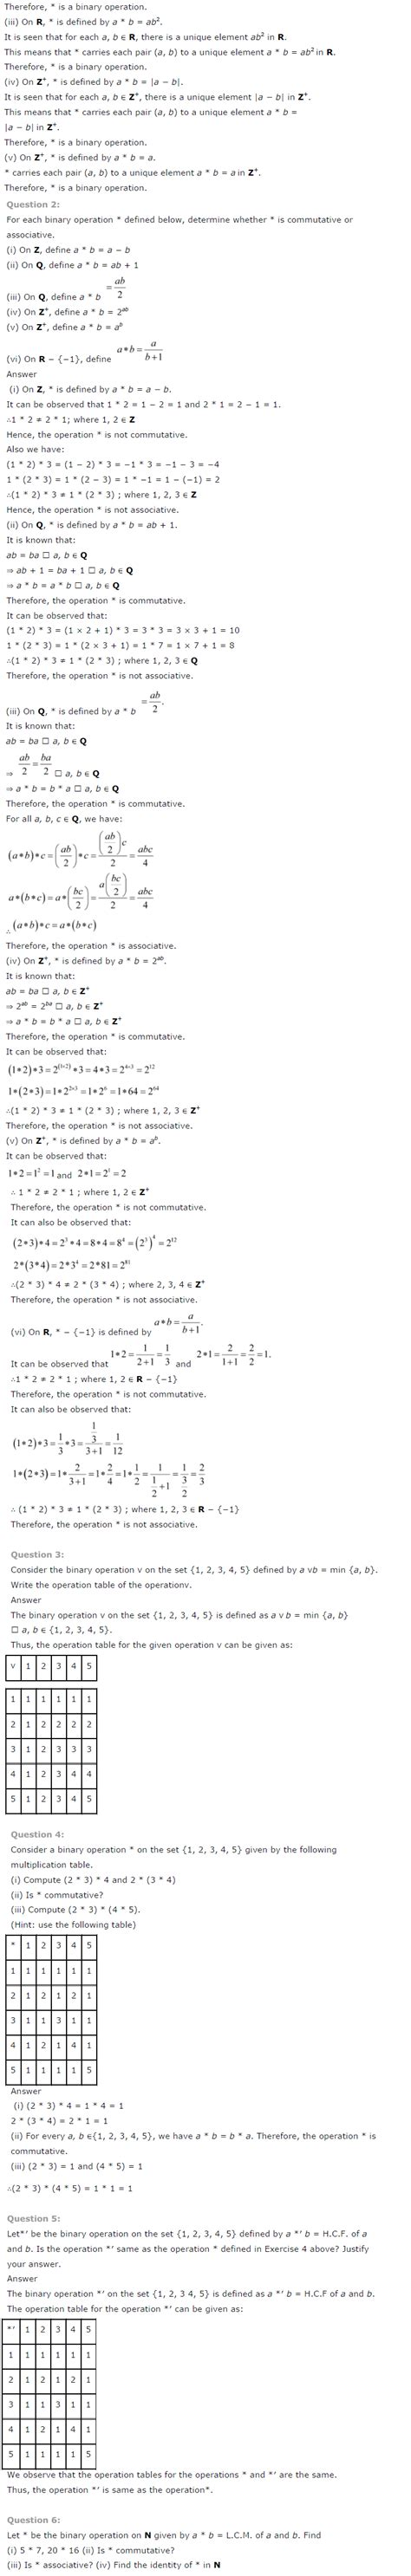 ncert solutions for class 12 maths chapter 1 relations